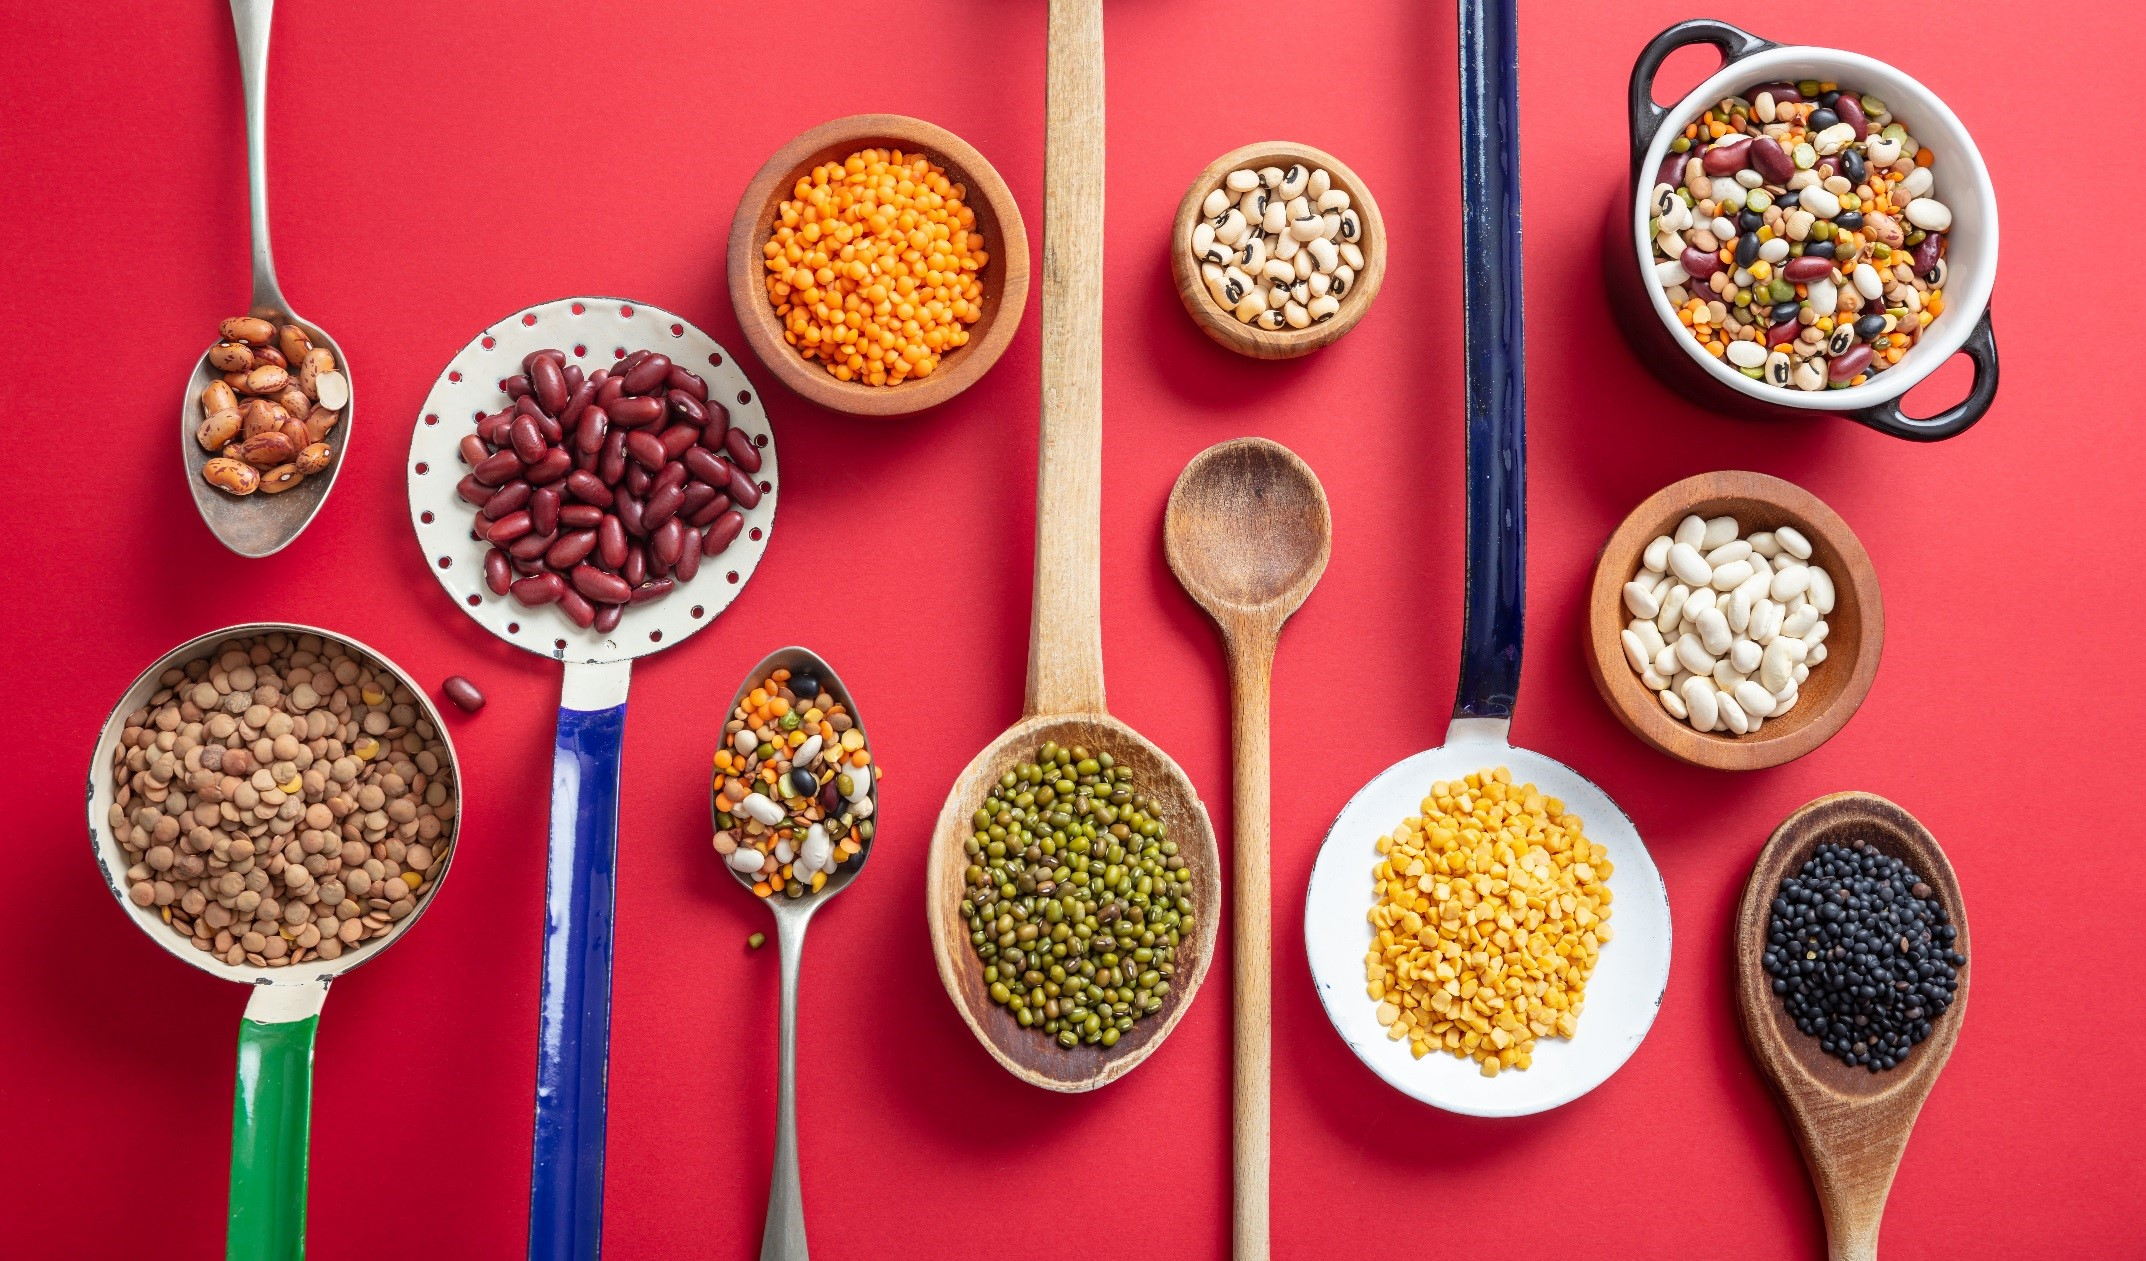 What Is It About Legumes And Pulses Kerry Health And Nutrition Institute